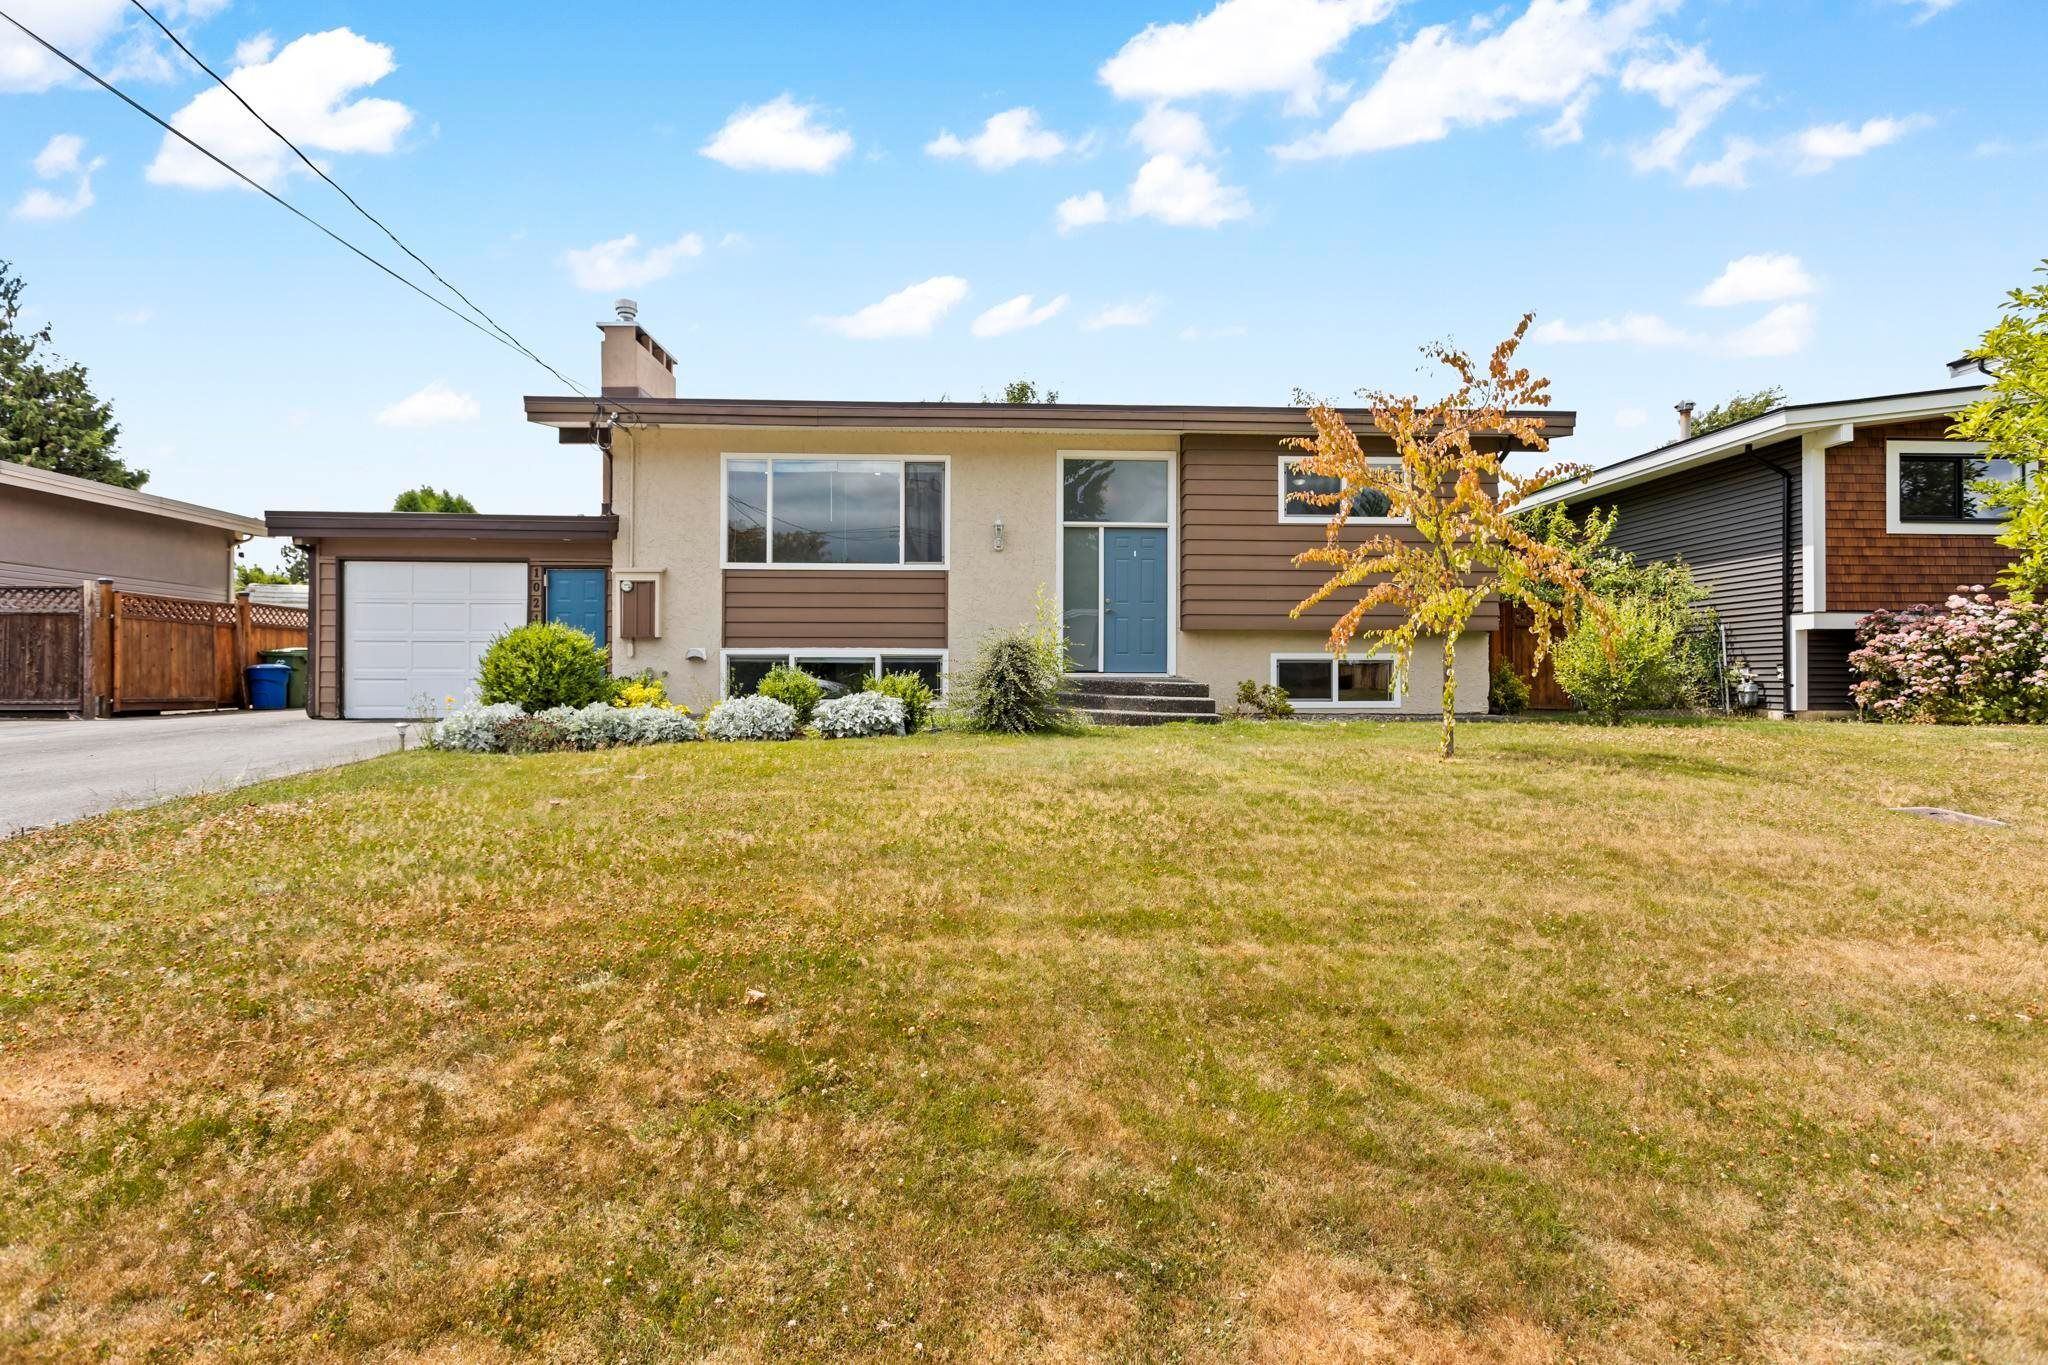 Main Photo: 10245 WEDGEWOOD Drive in Chilliwack: Fairfield Island House for sale : MLS®# R2612332